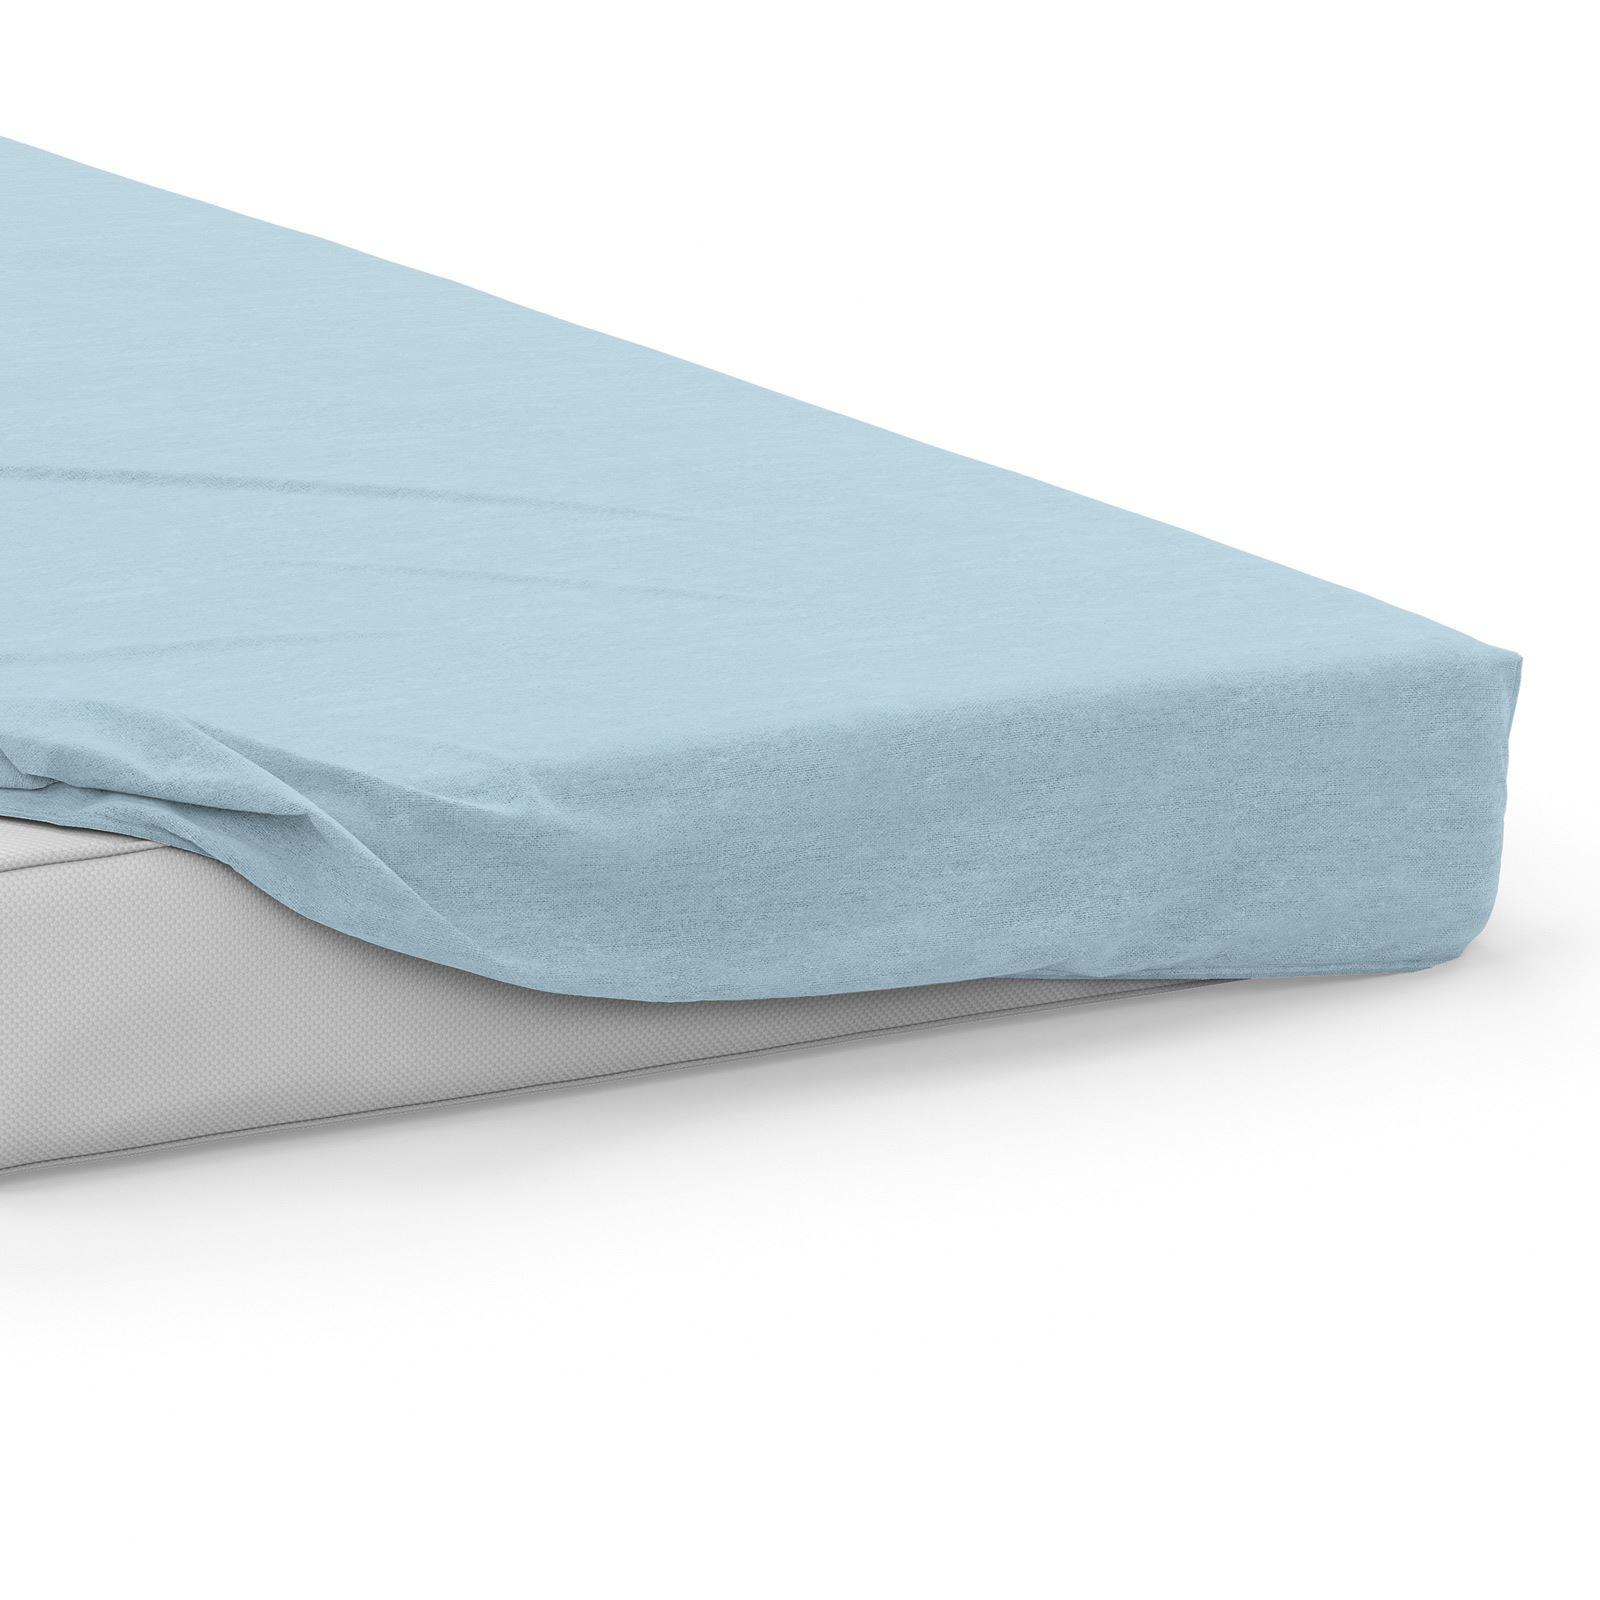 Flannelette Bed Sheets 100/% Brushed Cotton Fitted Flat Sheet Bedding Sets